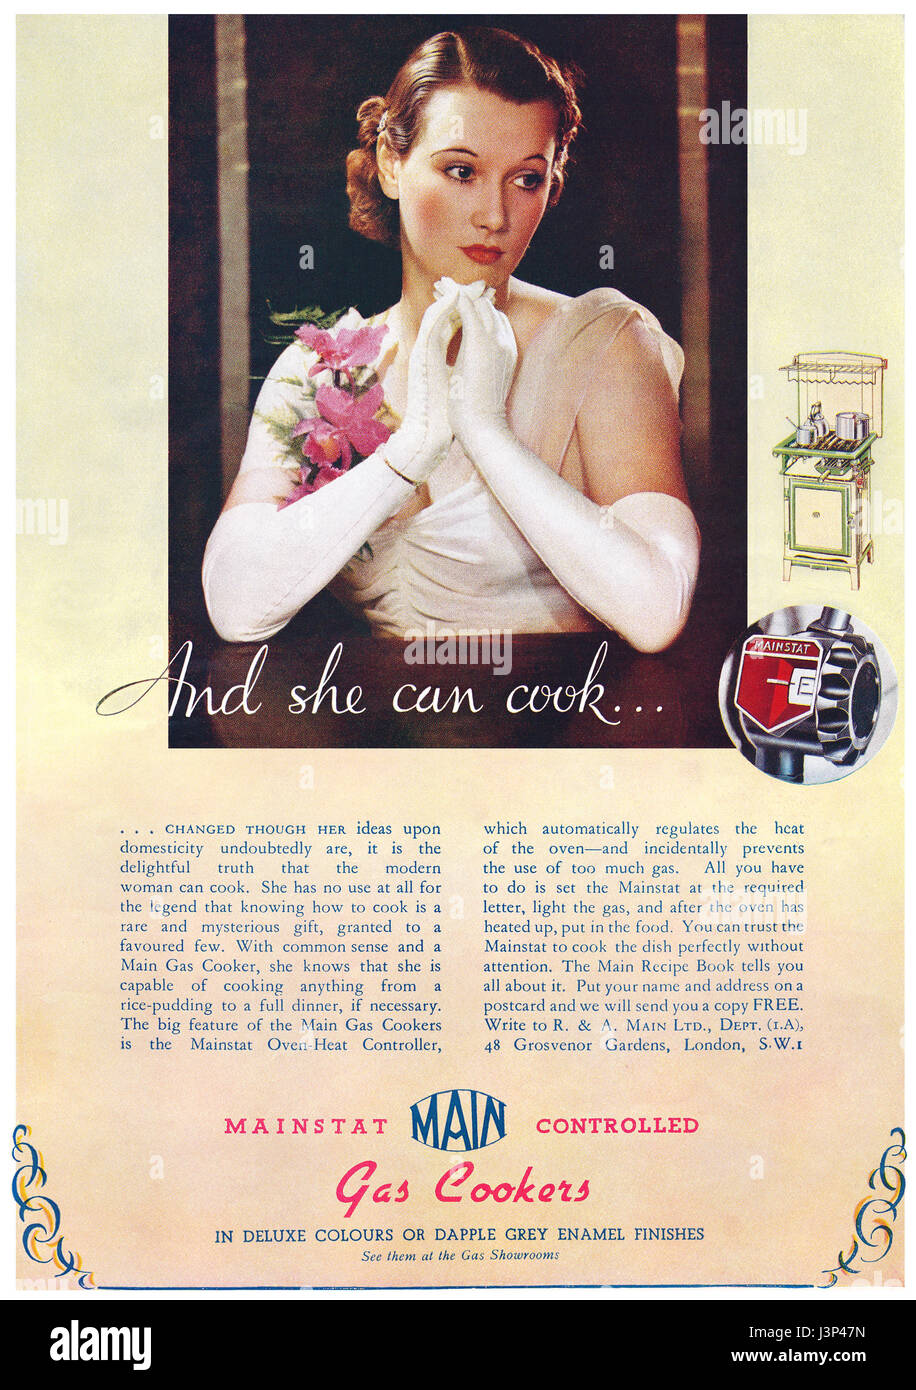 1937 British advertisement for Main Gas Cookers. - Stock Image